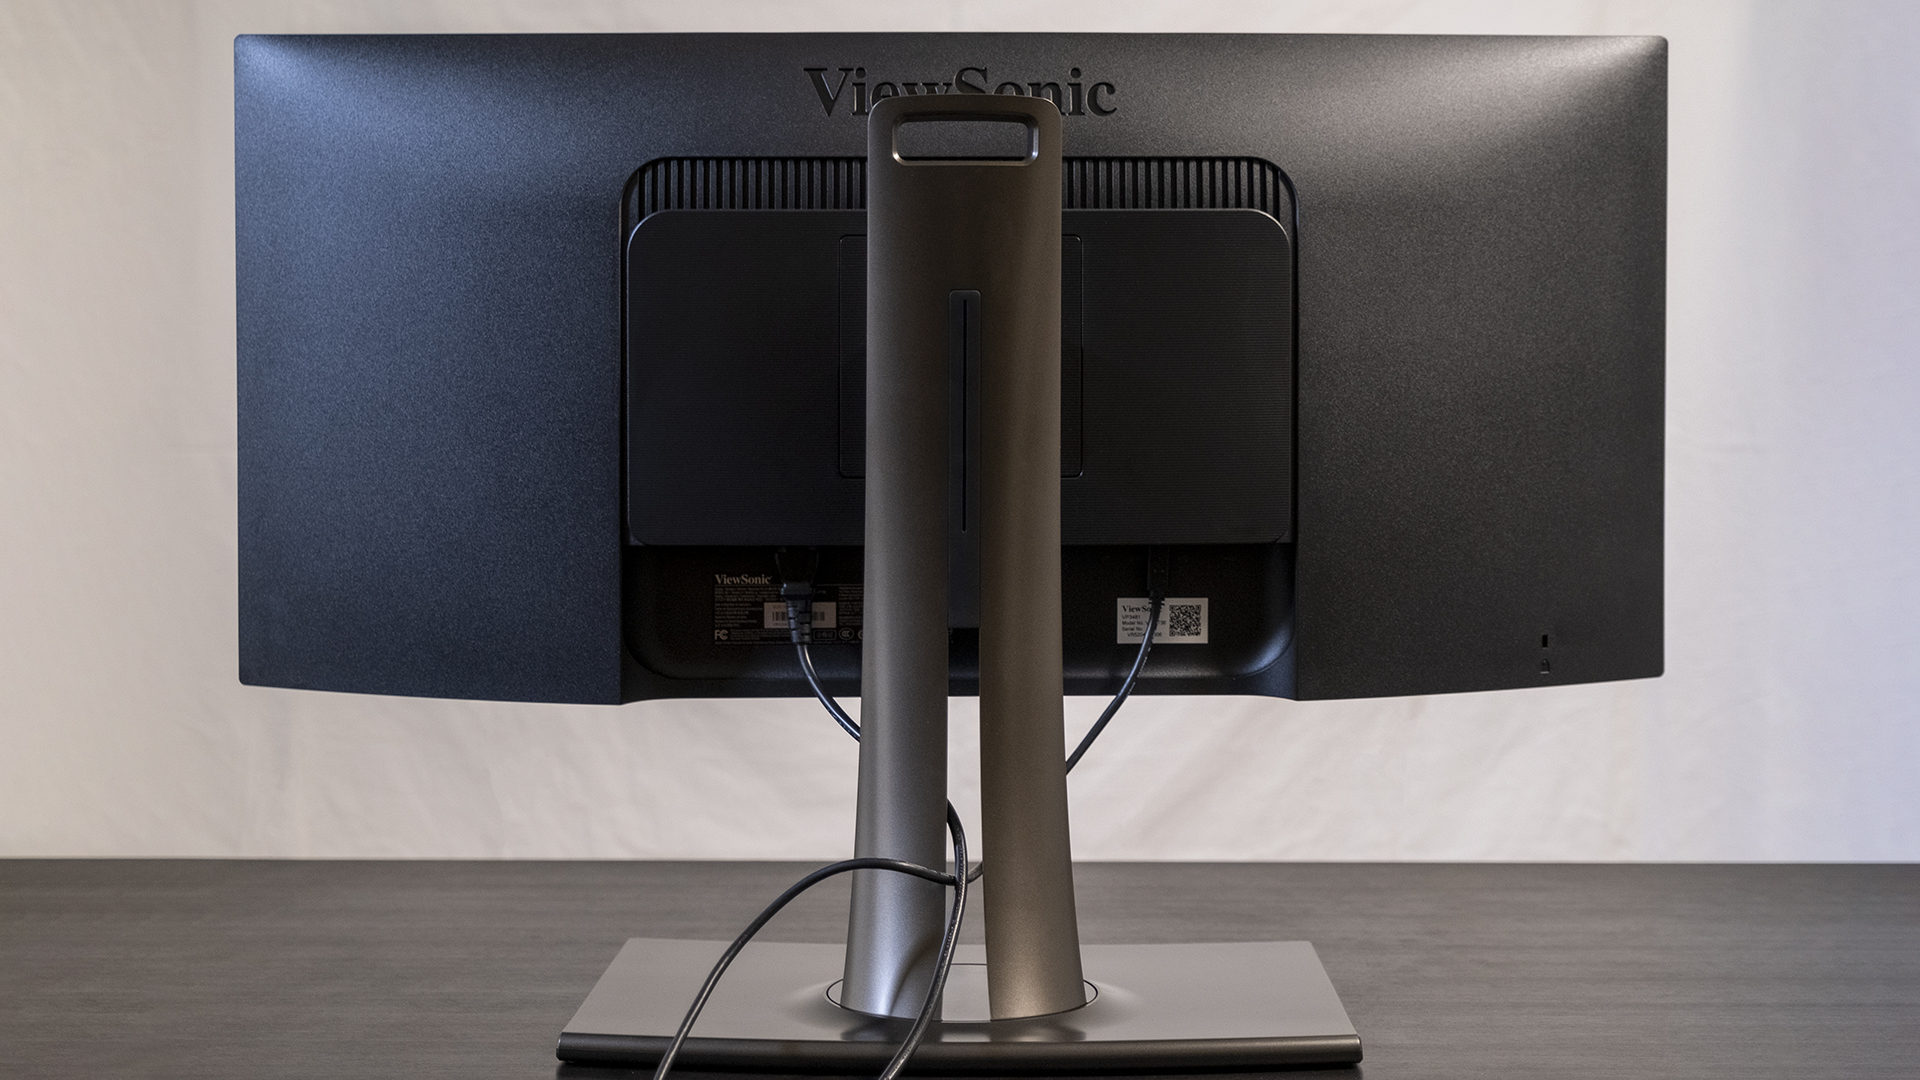 ViewSonic VP3481 ColorPro Rückseite Totale